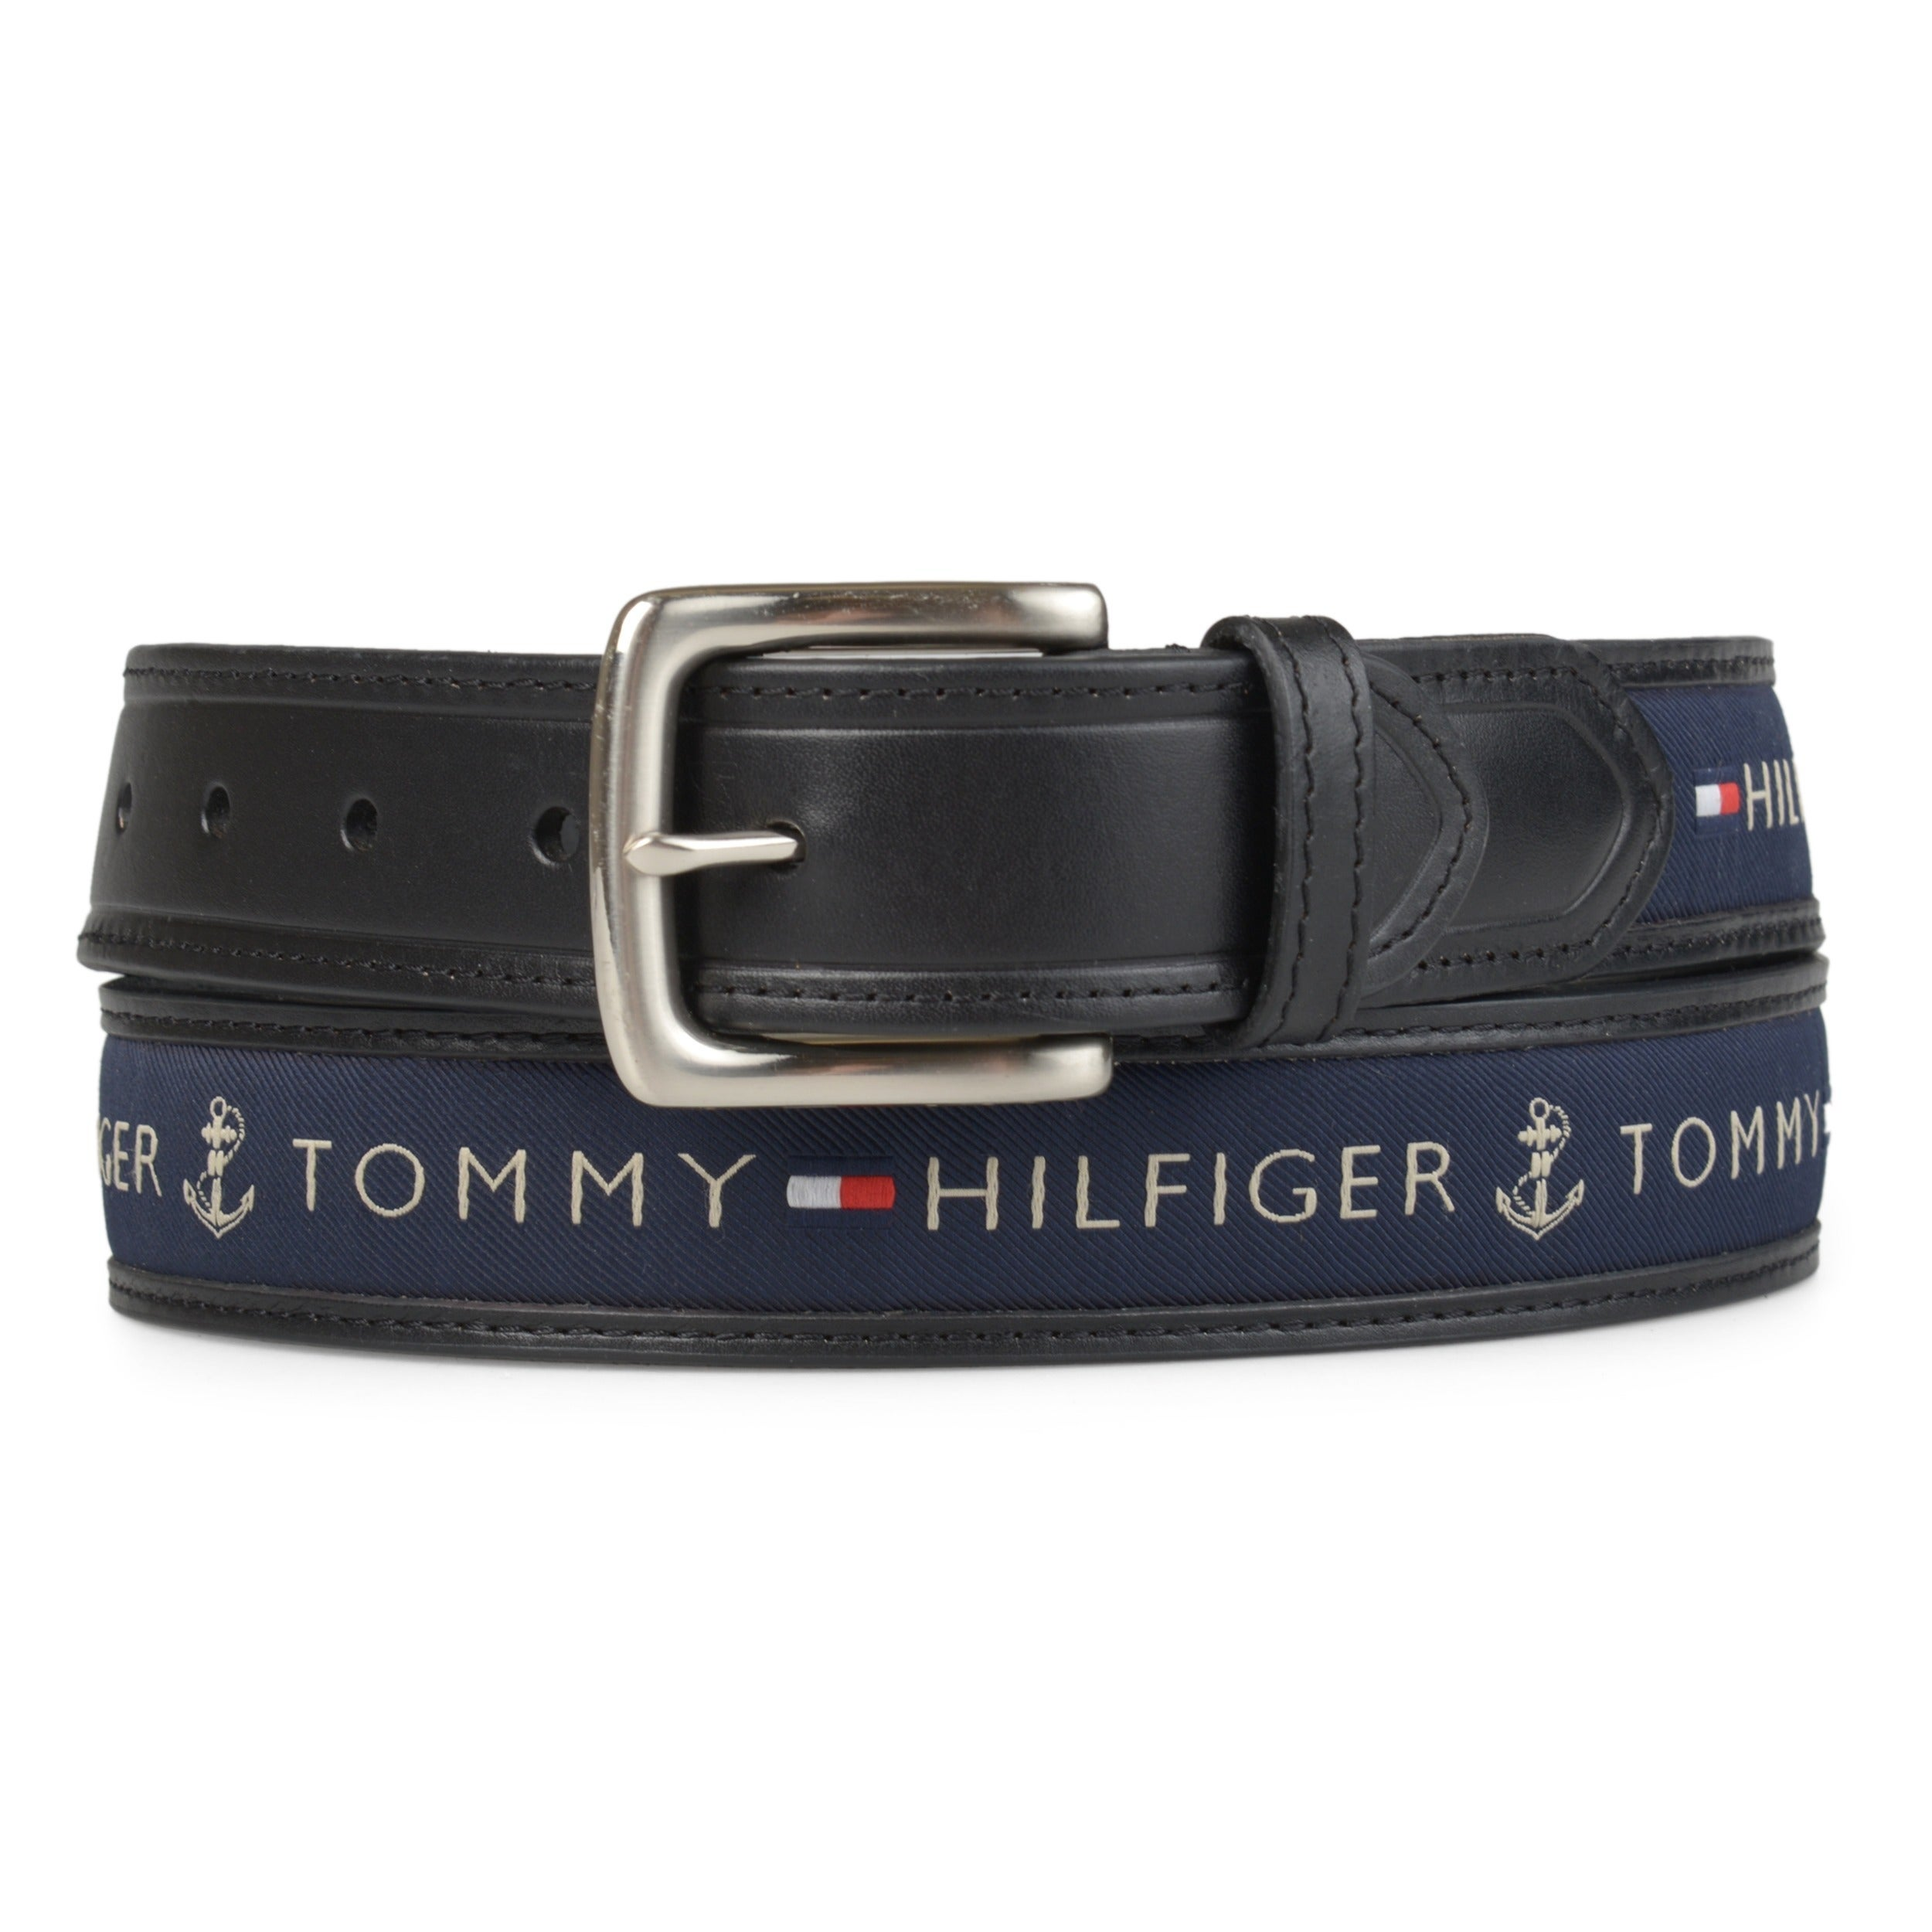 ae68b8d8 Shop Tommy Hilfiger Men's Topstitched Leather Belt - Free Shipping ...